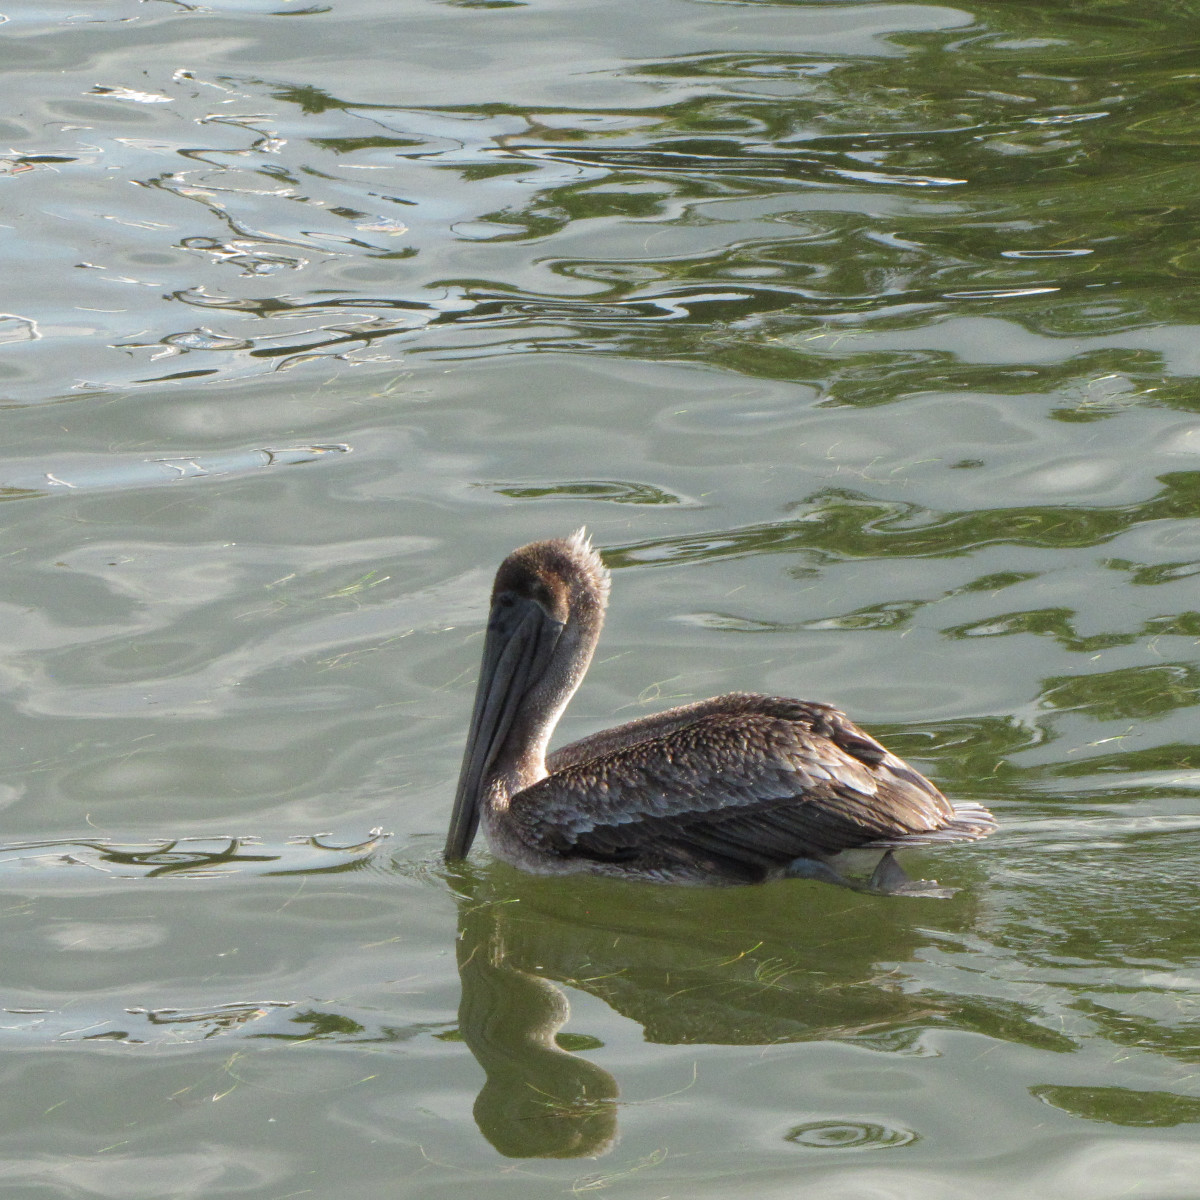 Brown pelican. The large pouch isn't always visible when the beak is held like this.